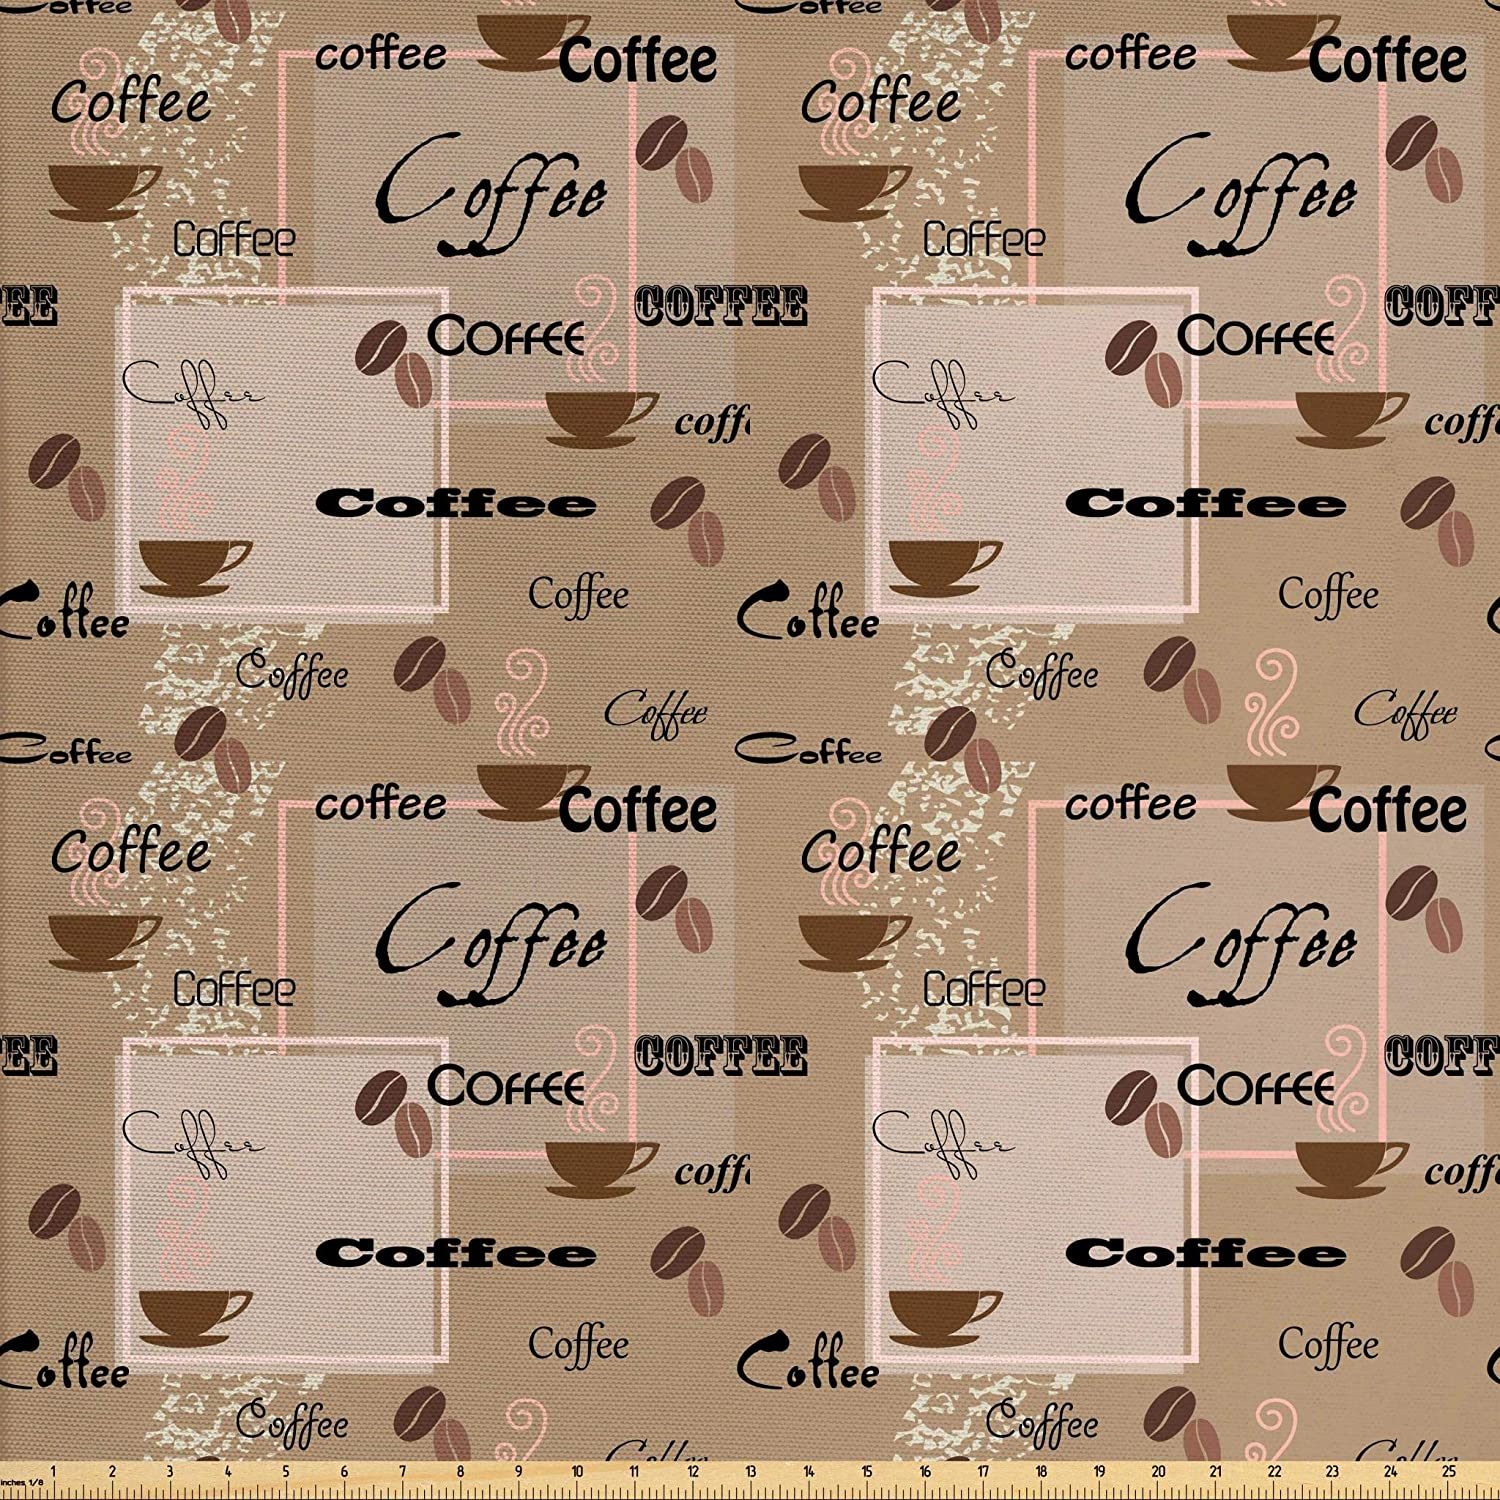 Ambesonne Coffee Fabric by The Yard, Coffee Words Different Typographies Beans Cups on Abstract Vintage Backdrop, Decorative Fabric for Upholstery and Home Accents, 3 Yards, Black Brown